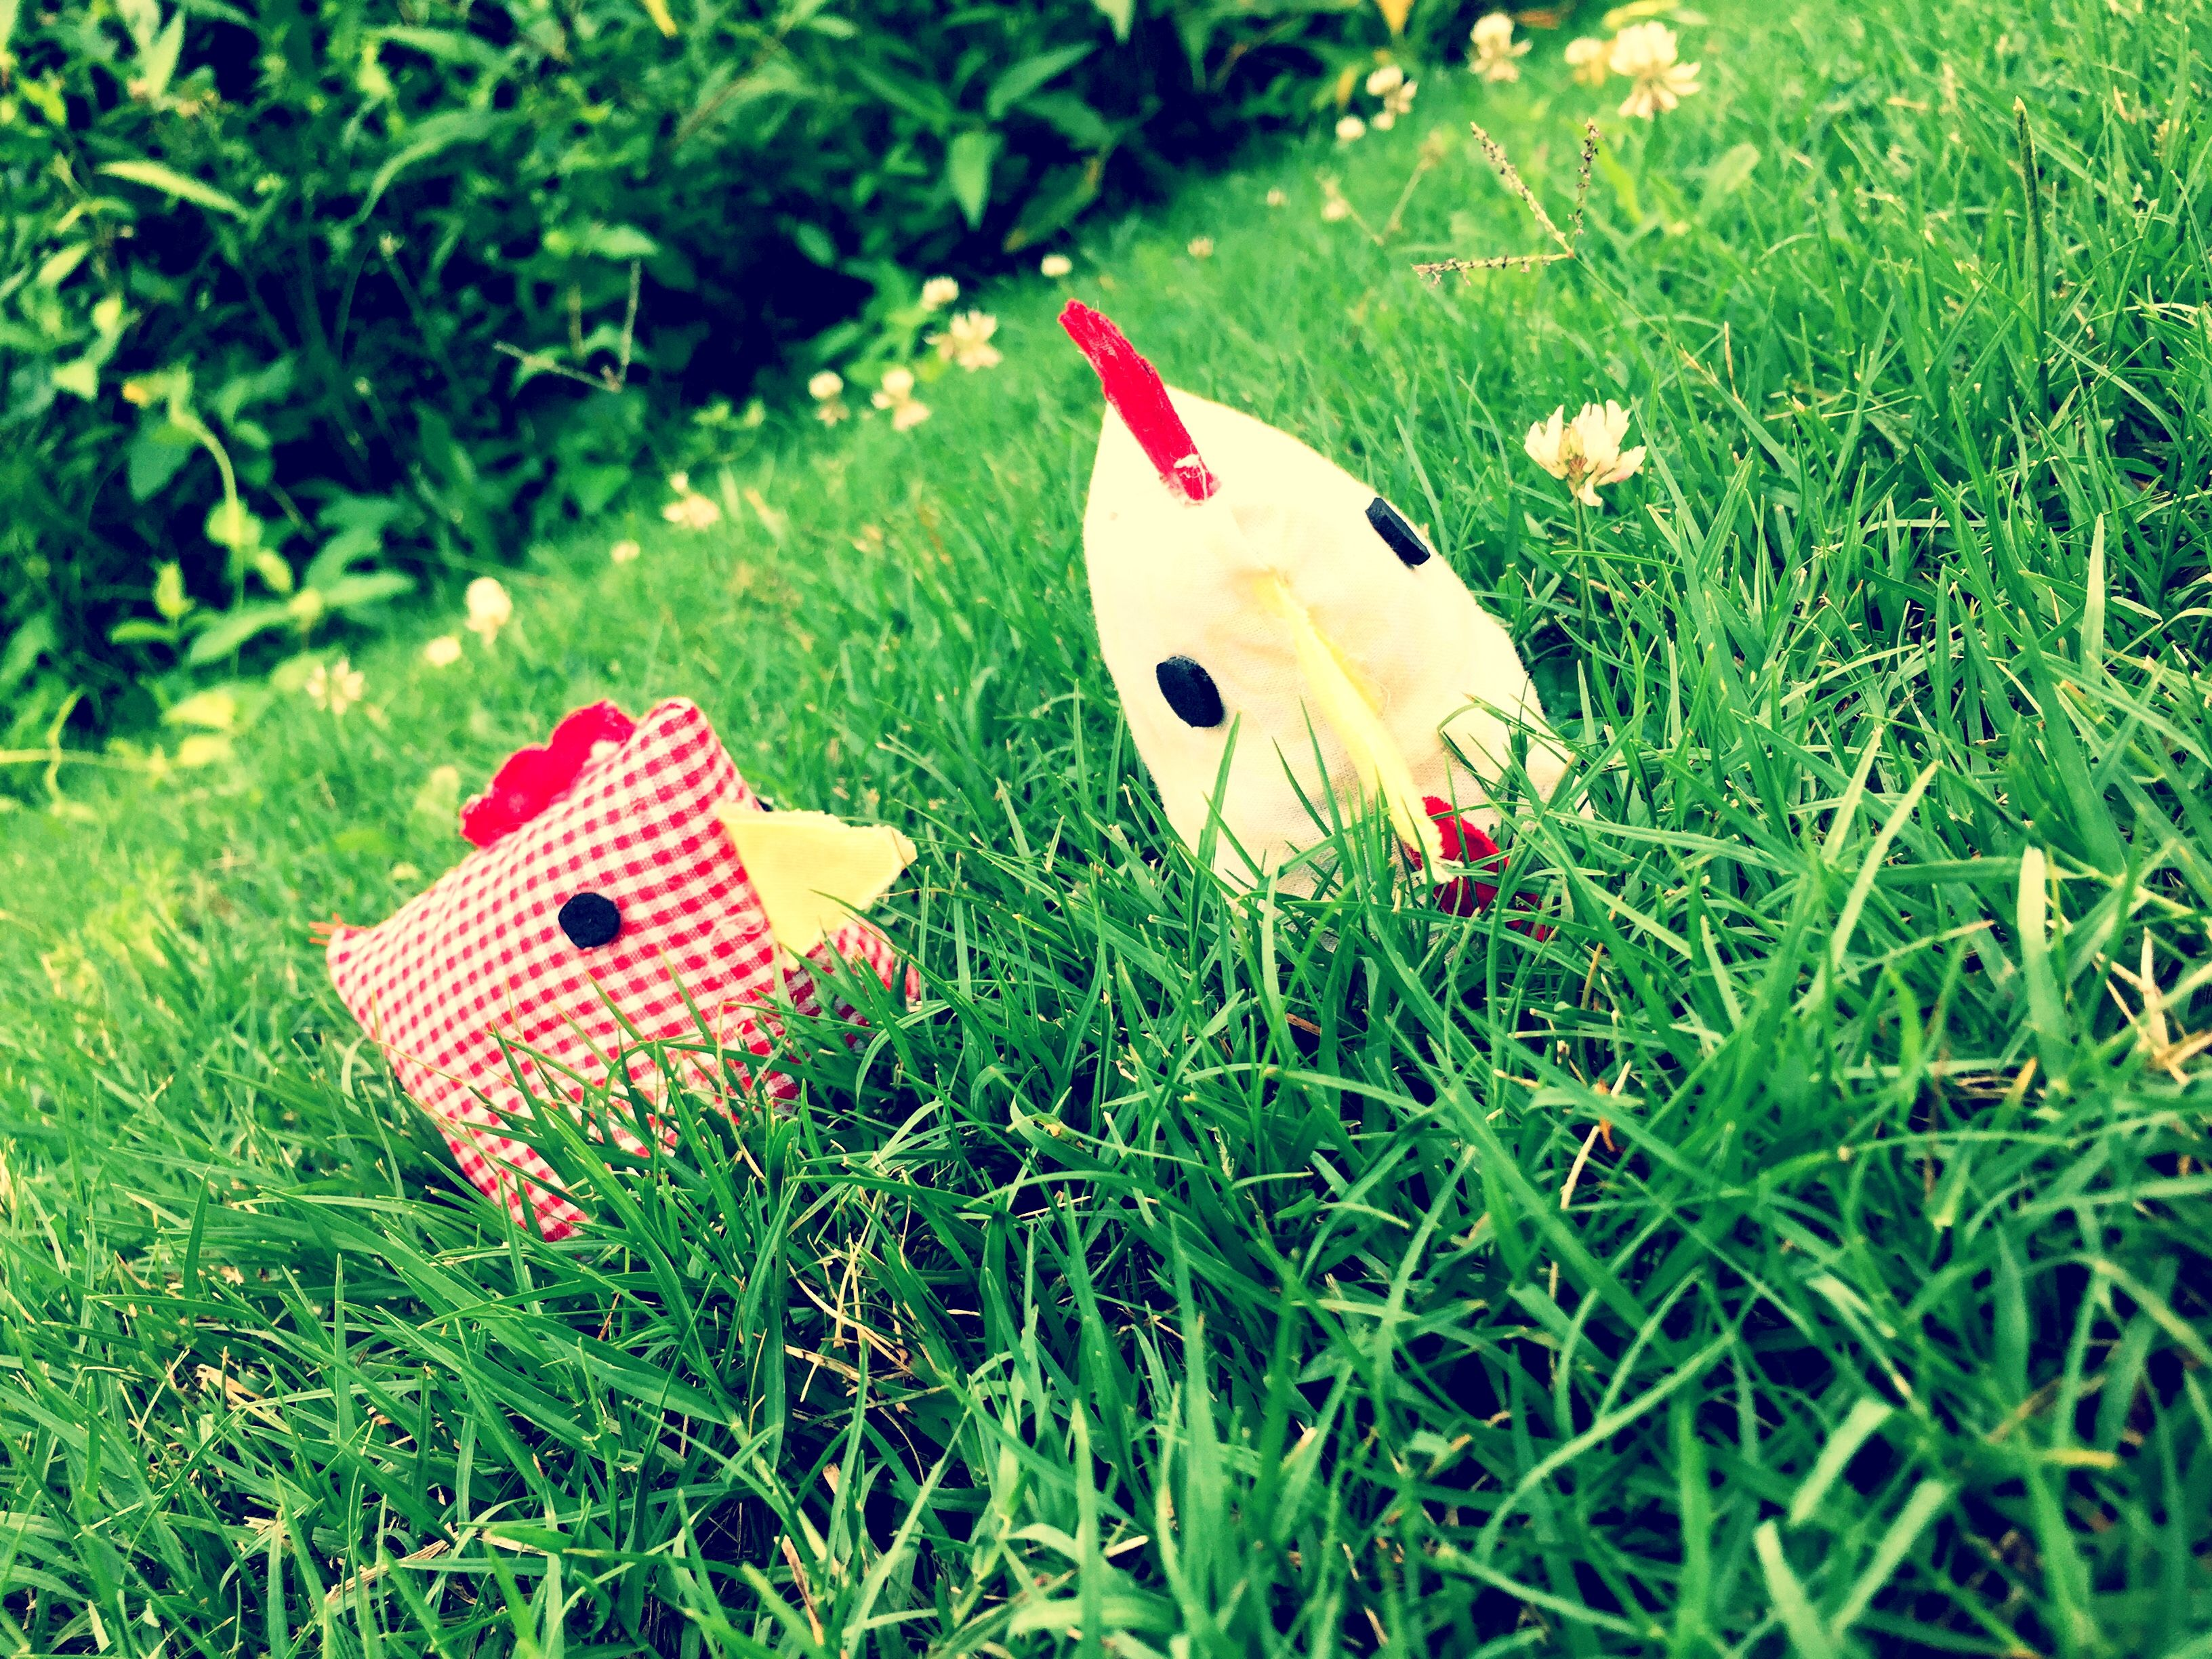 Chickens made by Kemp and Olivia (With images) Chickens